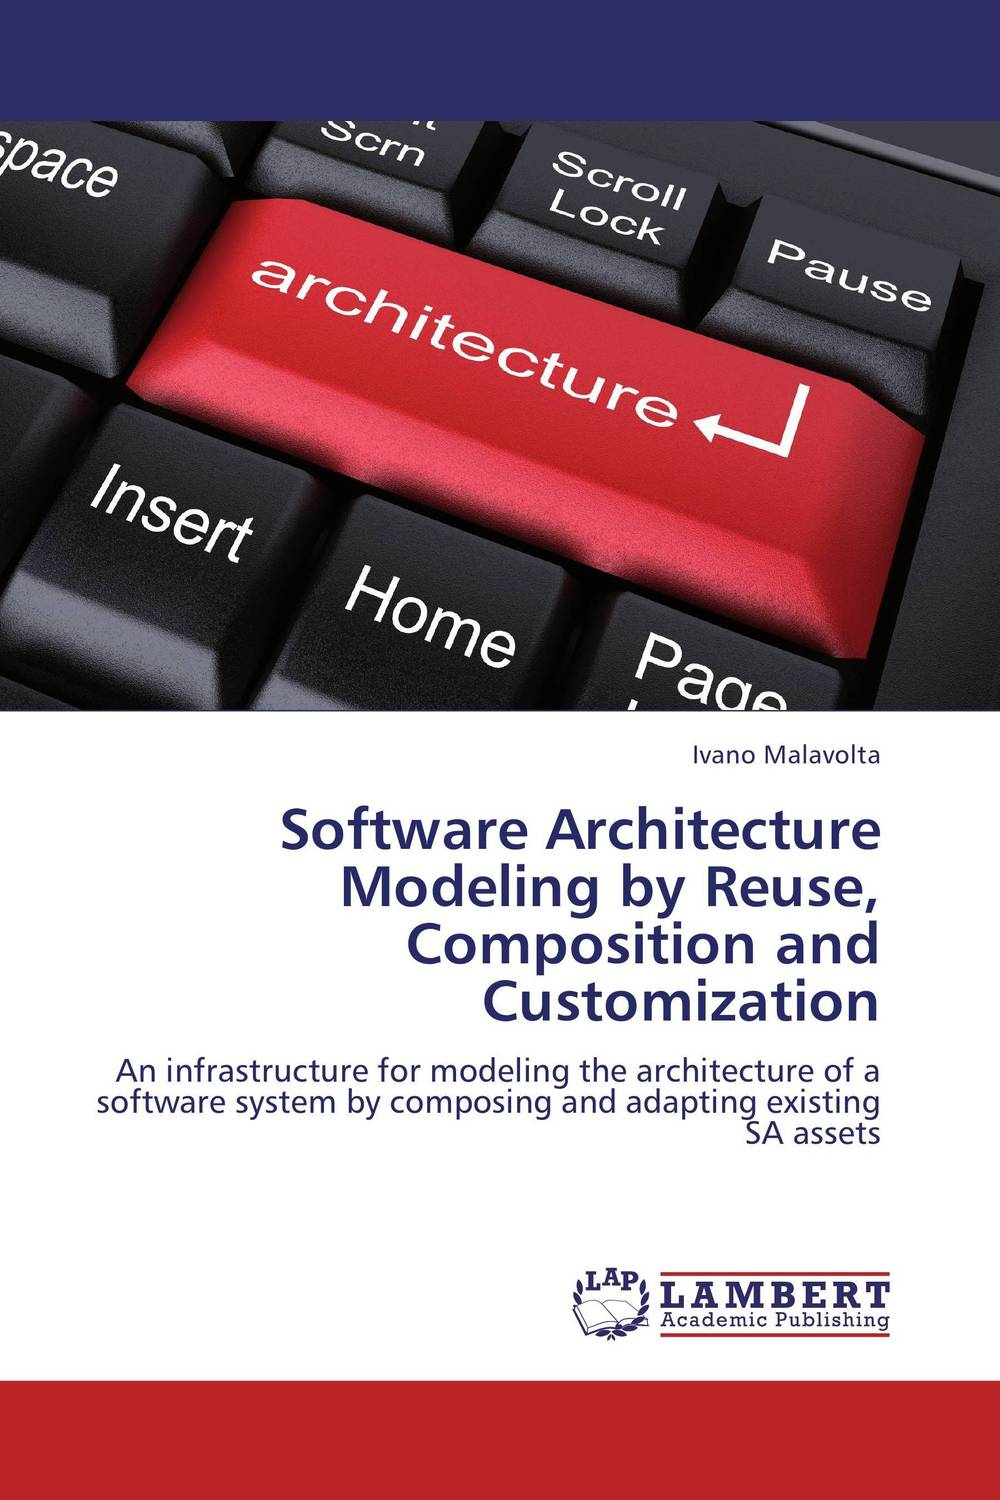 Software Architecture Modeling by Reuse, Composition and Customization modeling rejection immunity a proposed model